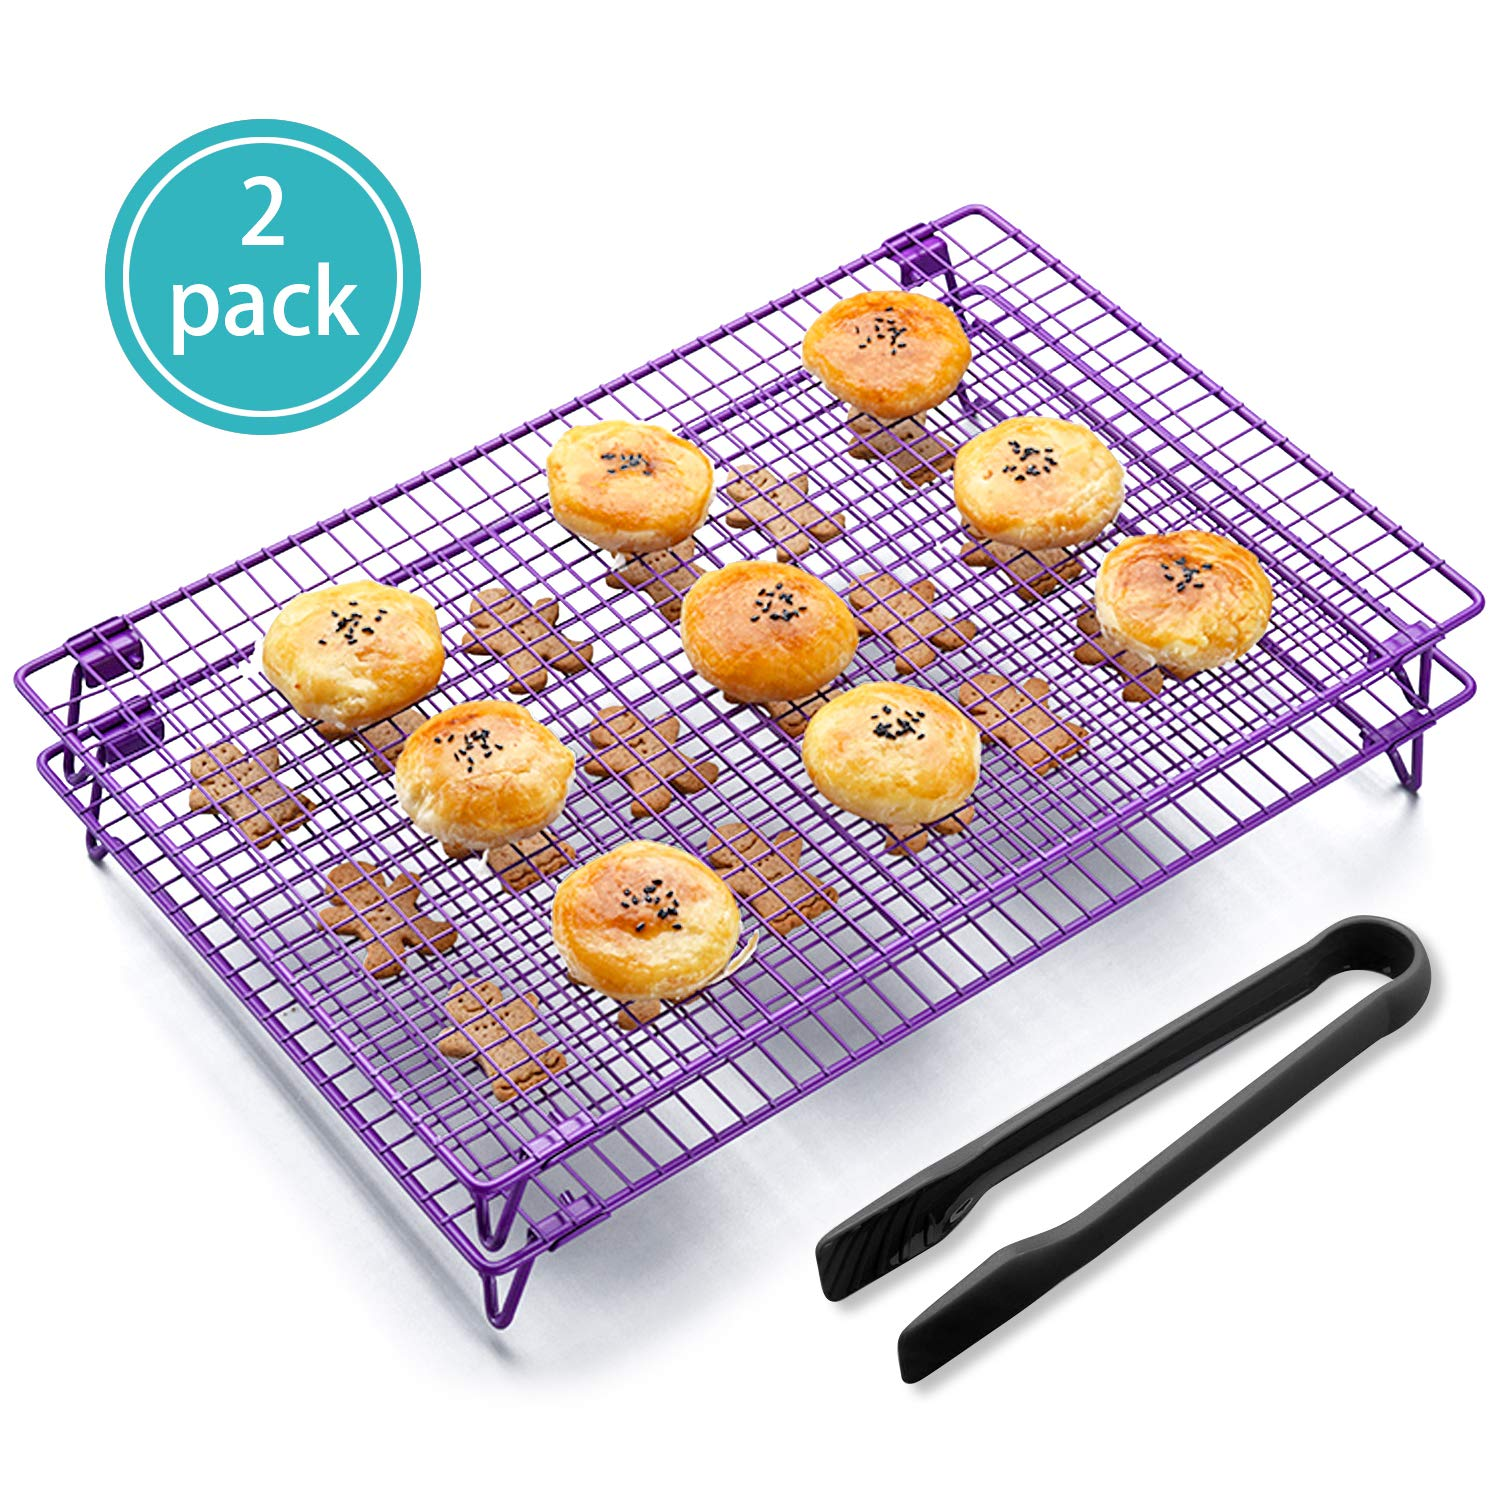 KALREDE Cooling Rack Folding Baking Rack Pack of 2 - Wire Non-Stick Cookie Cooling Racks Bonus a Plastic Food Tong for Cookie,Bread,Cake or Baked Foods - Baking Accessories ( 17 X 11 Inches,Purple) by Kalrede